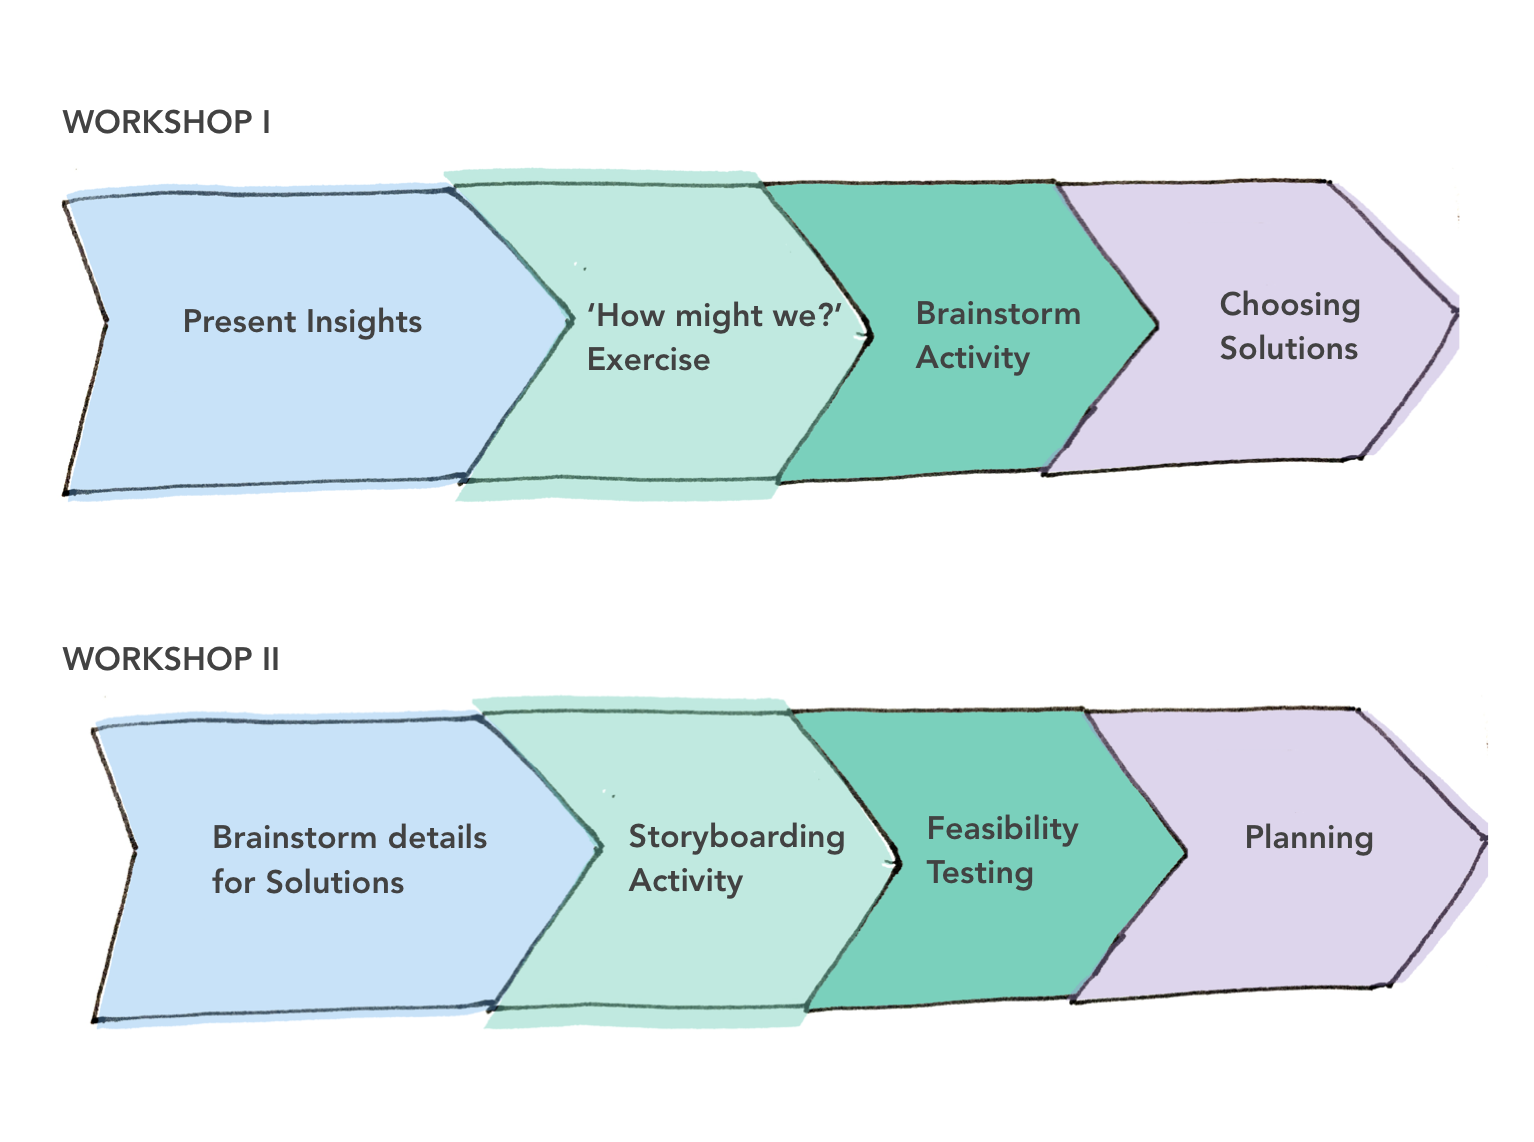 Figure: Process for the two part workshop